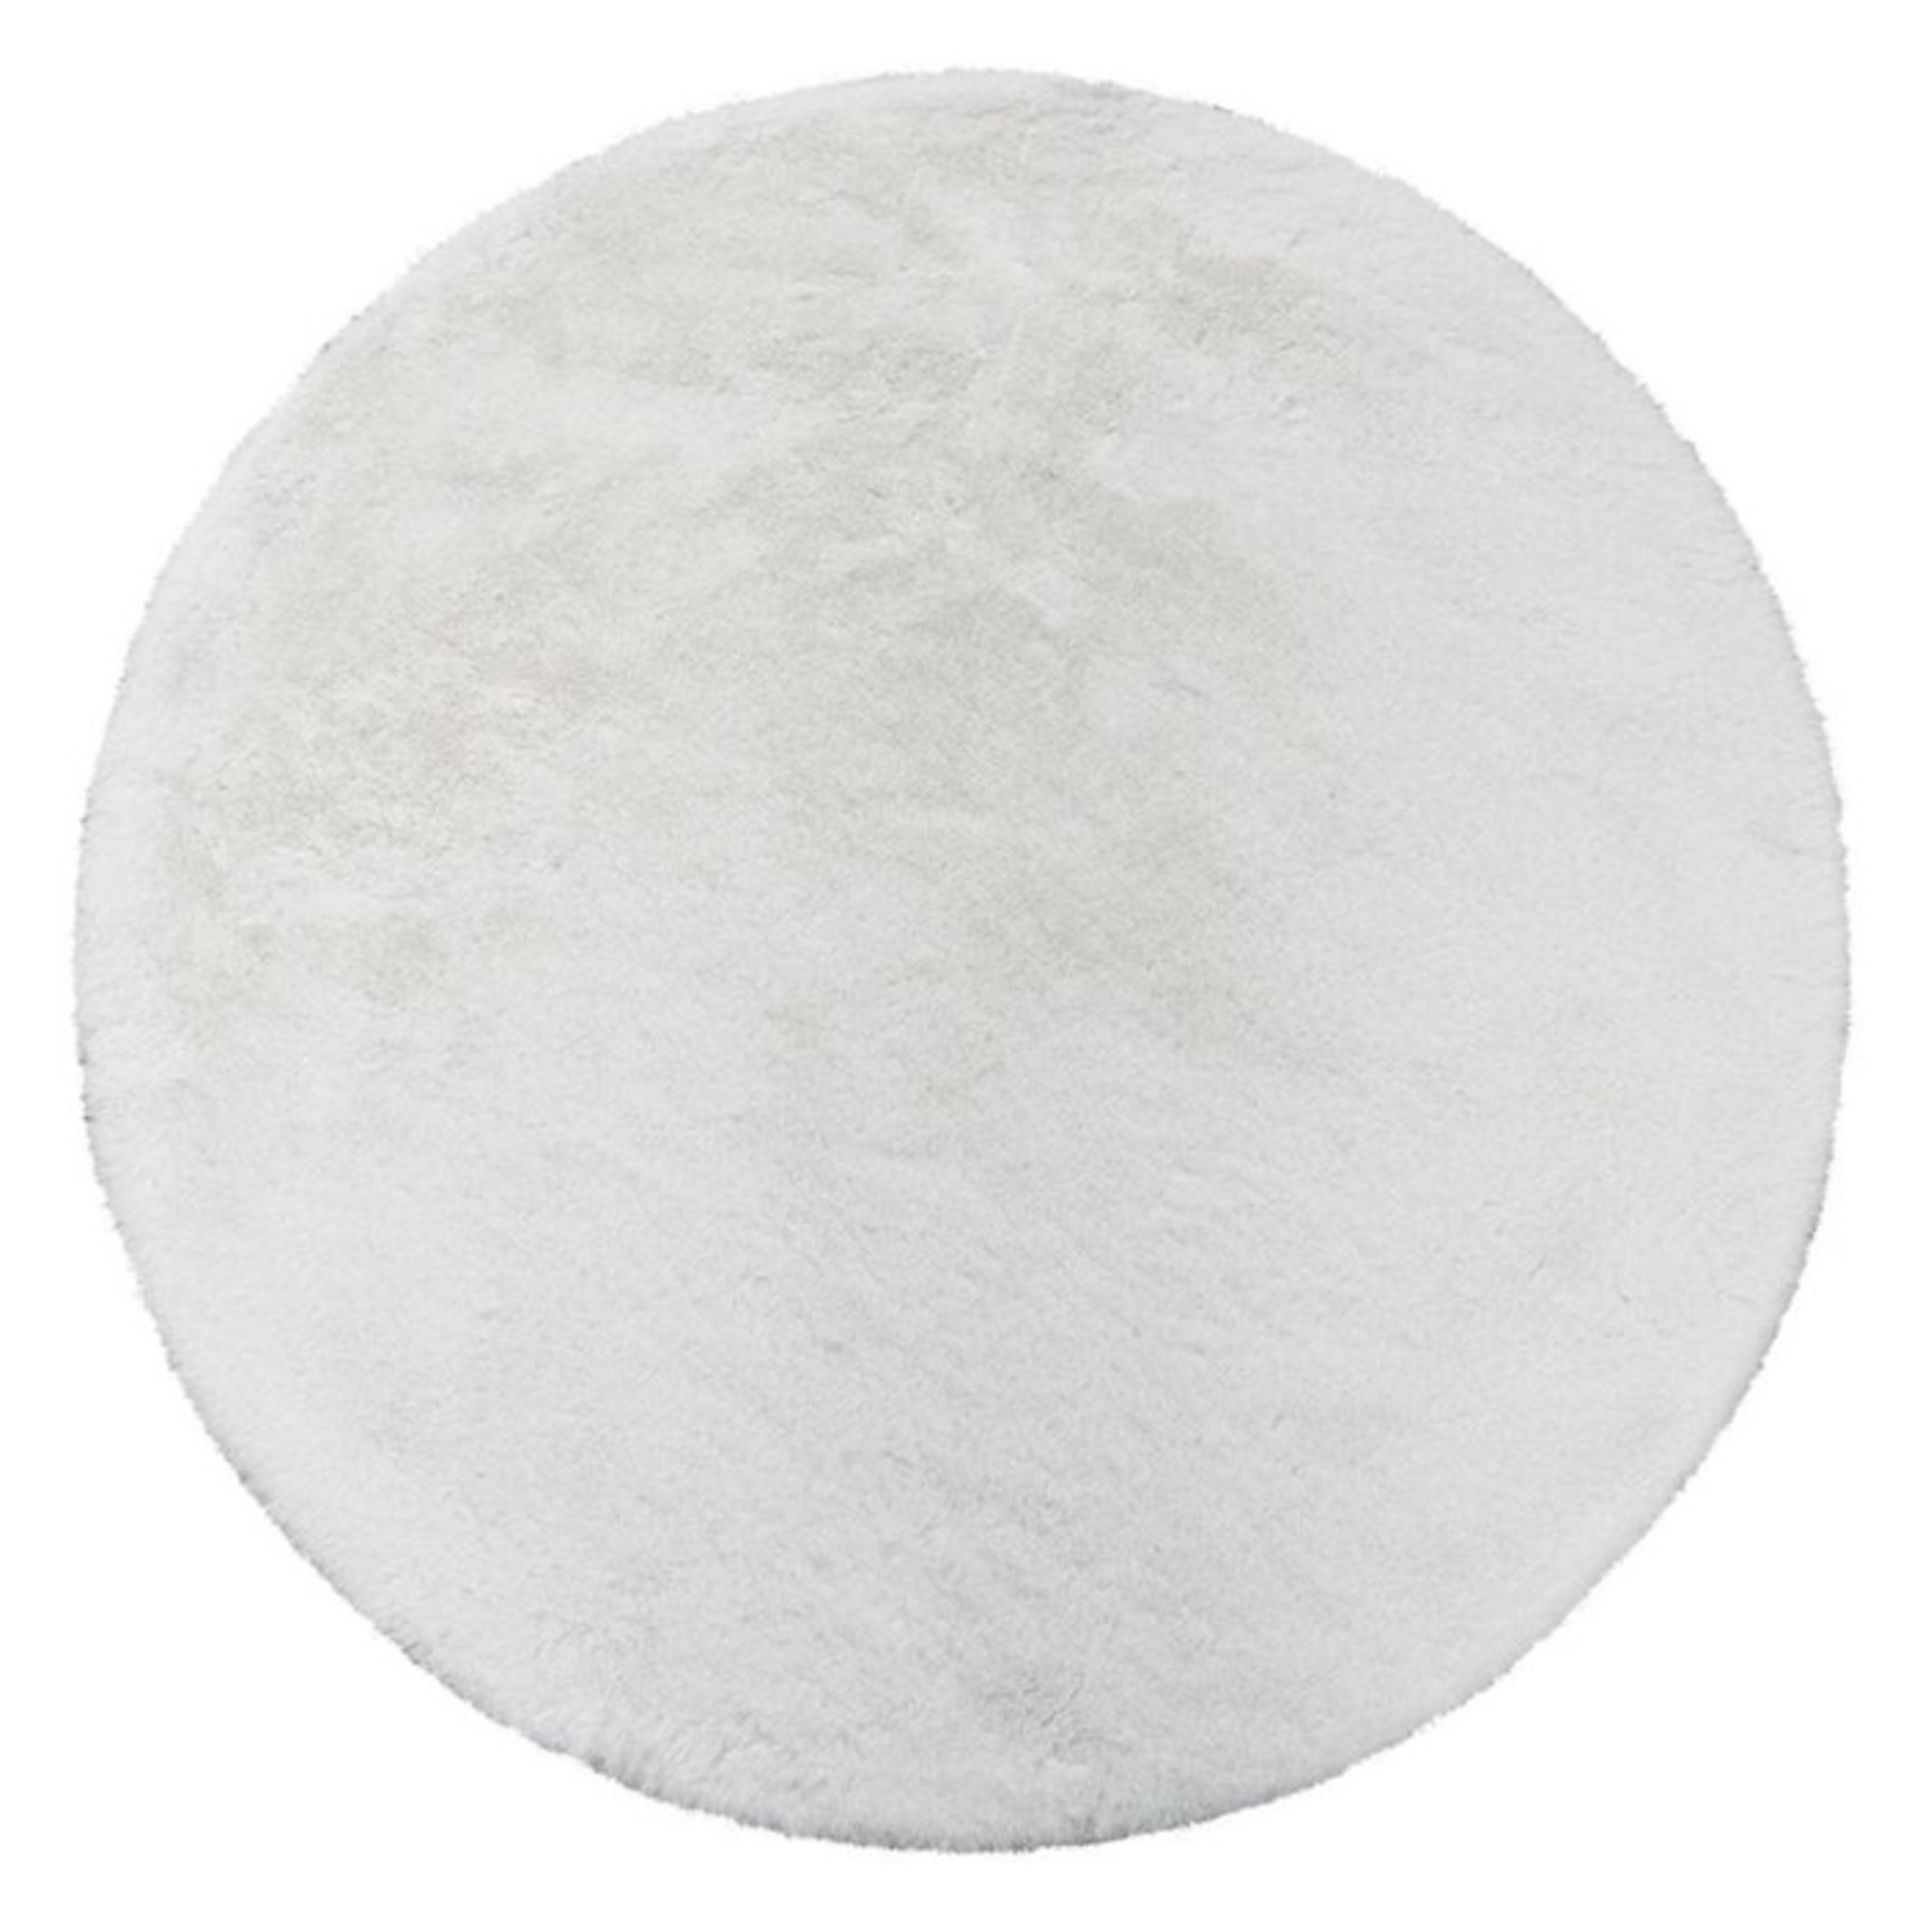 Anartz Shag White Rug Rug Size: Rectangle 200 x 290cm (HL7 - 3/1 -PSCH1867.56909776)